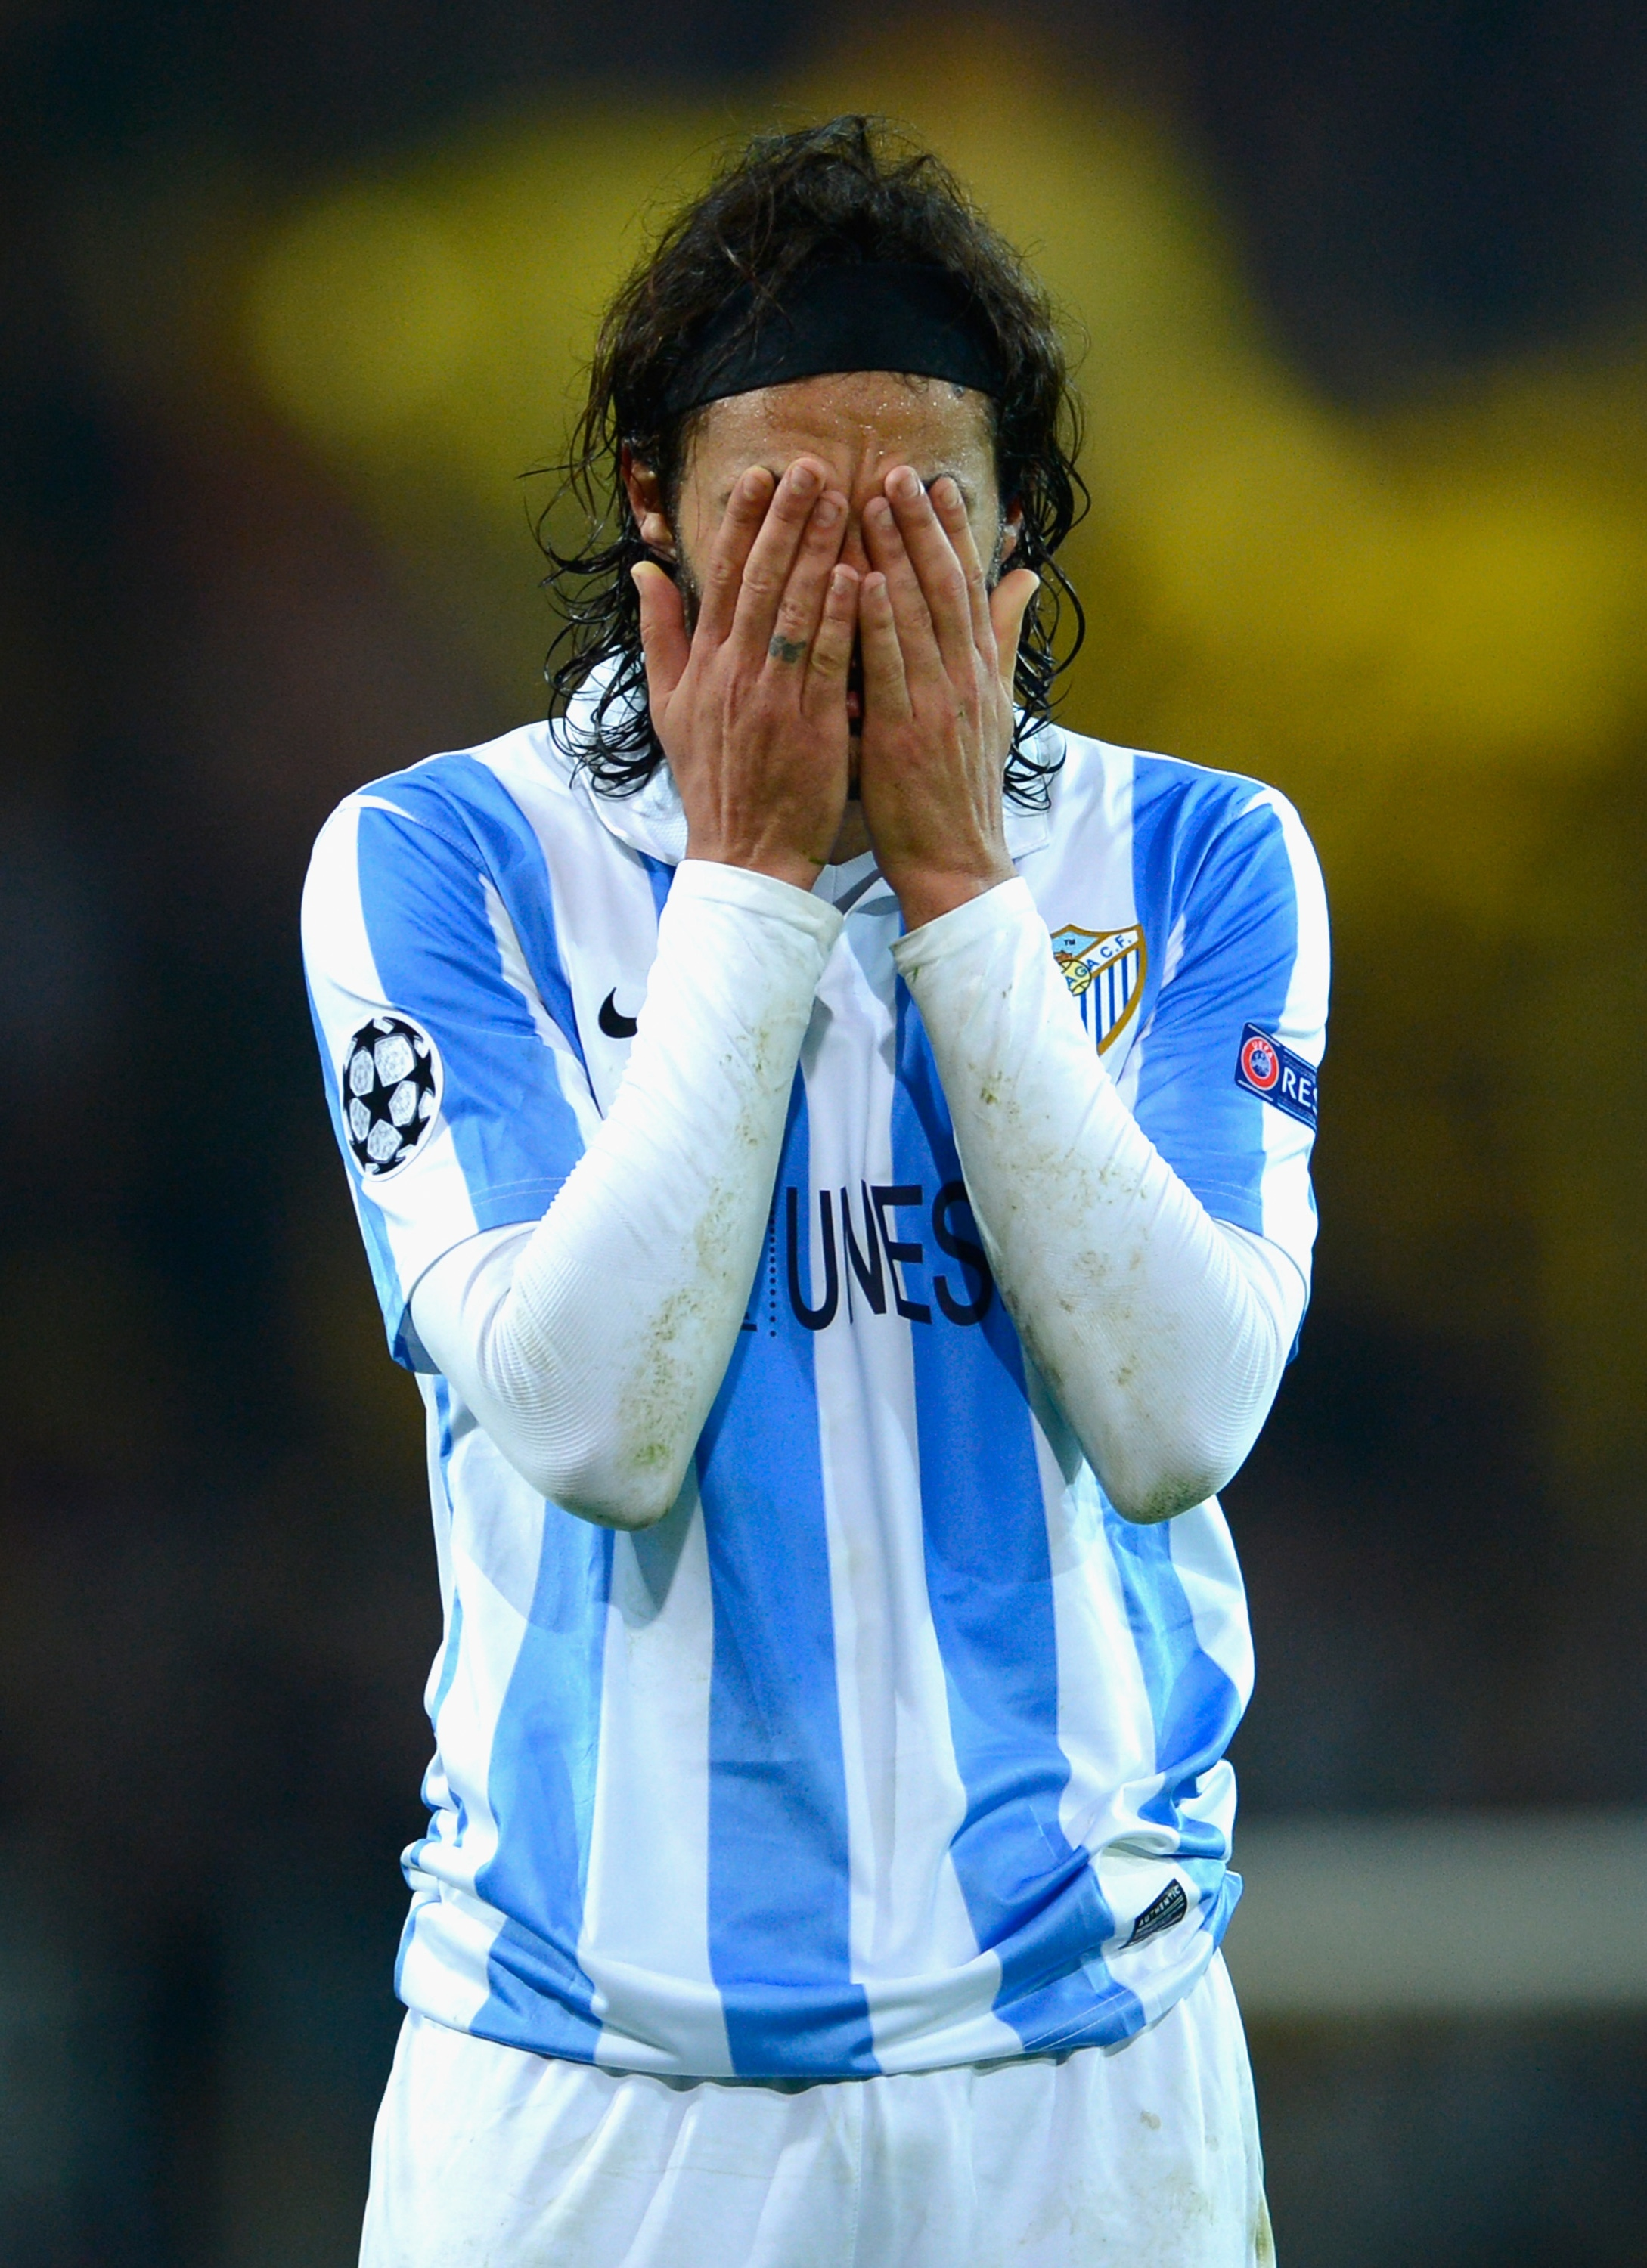 Sergio Sanchez of Malaga after defeat in the Champions League quarterfinal. (Getty Images)